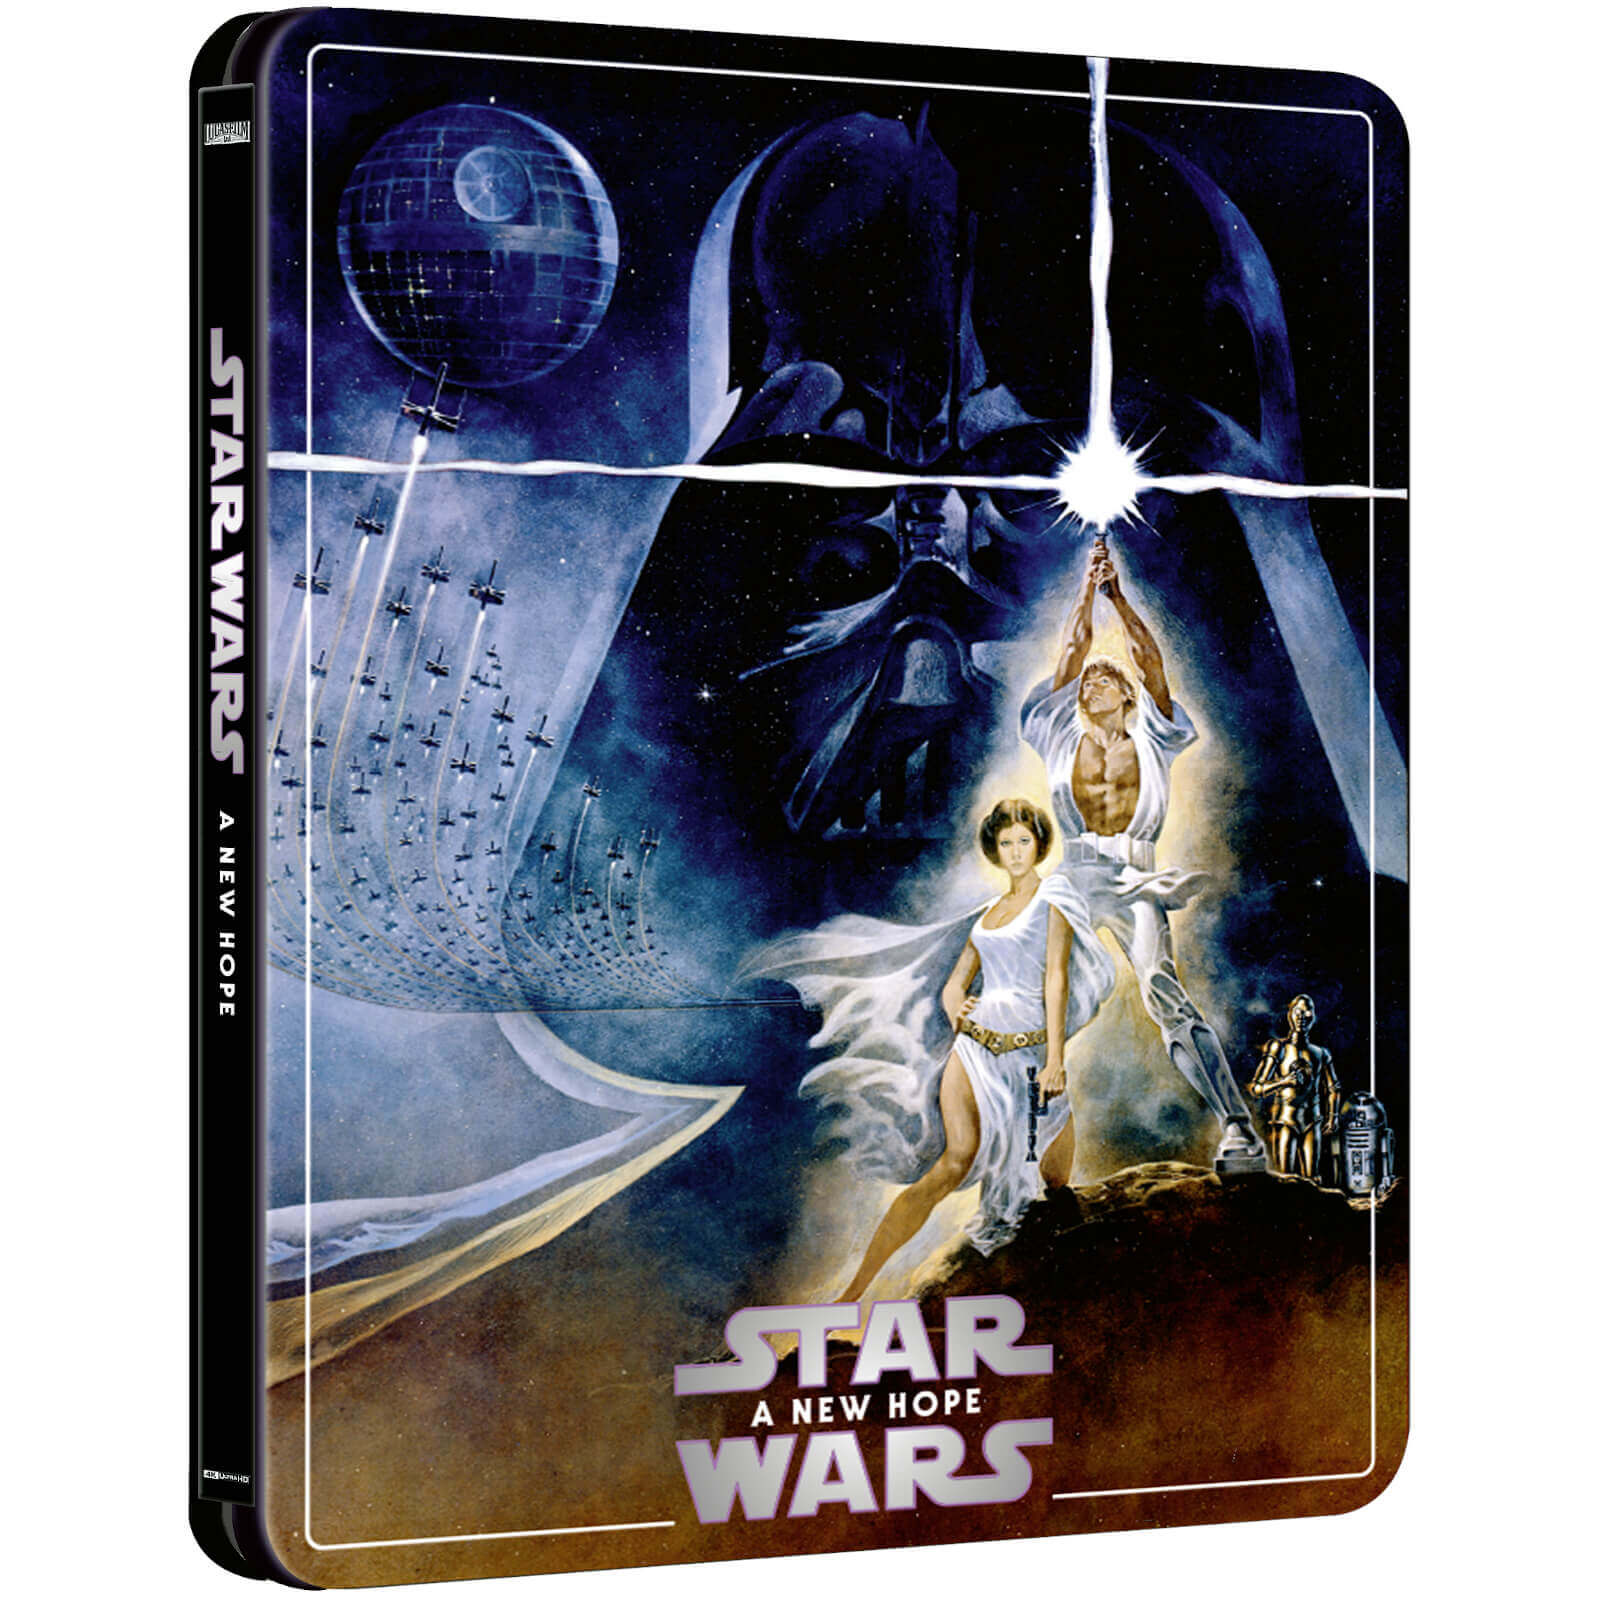 Vorbestellbar Star Wars Episode Iv Steelbook Bluray Steels At